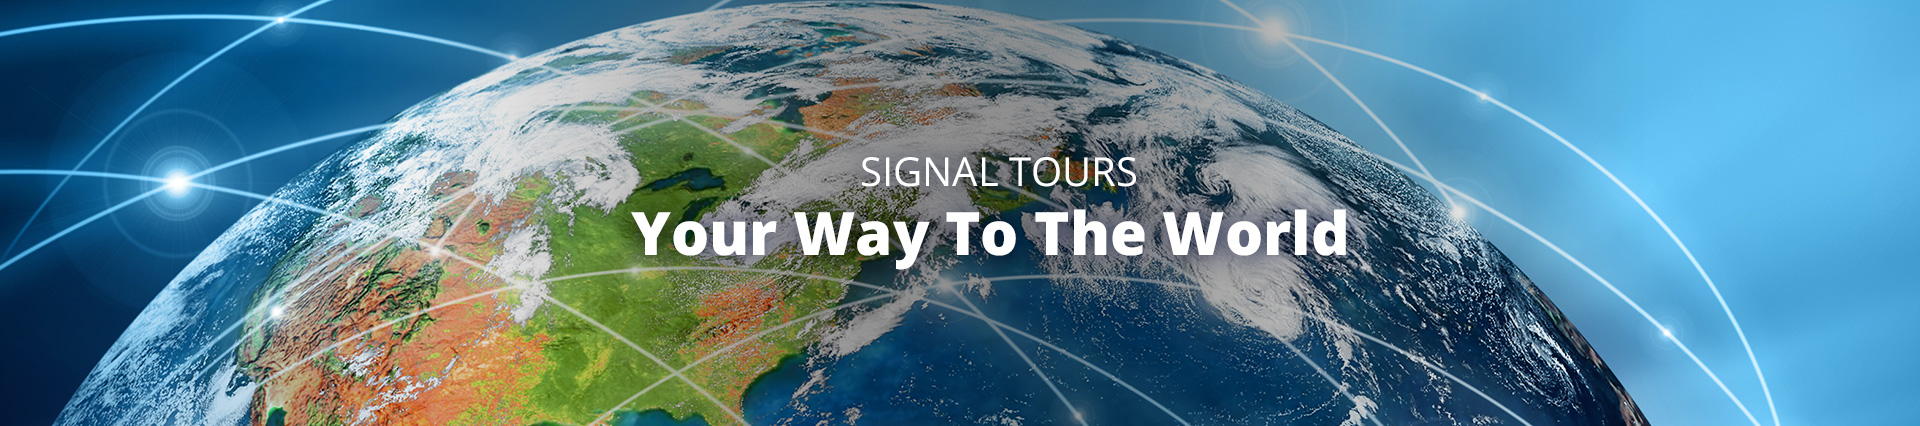 Global services | Signal Tours